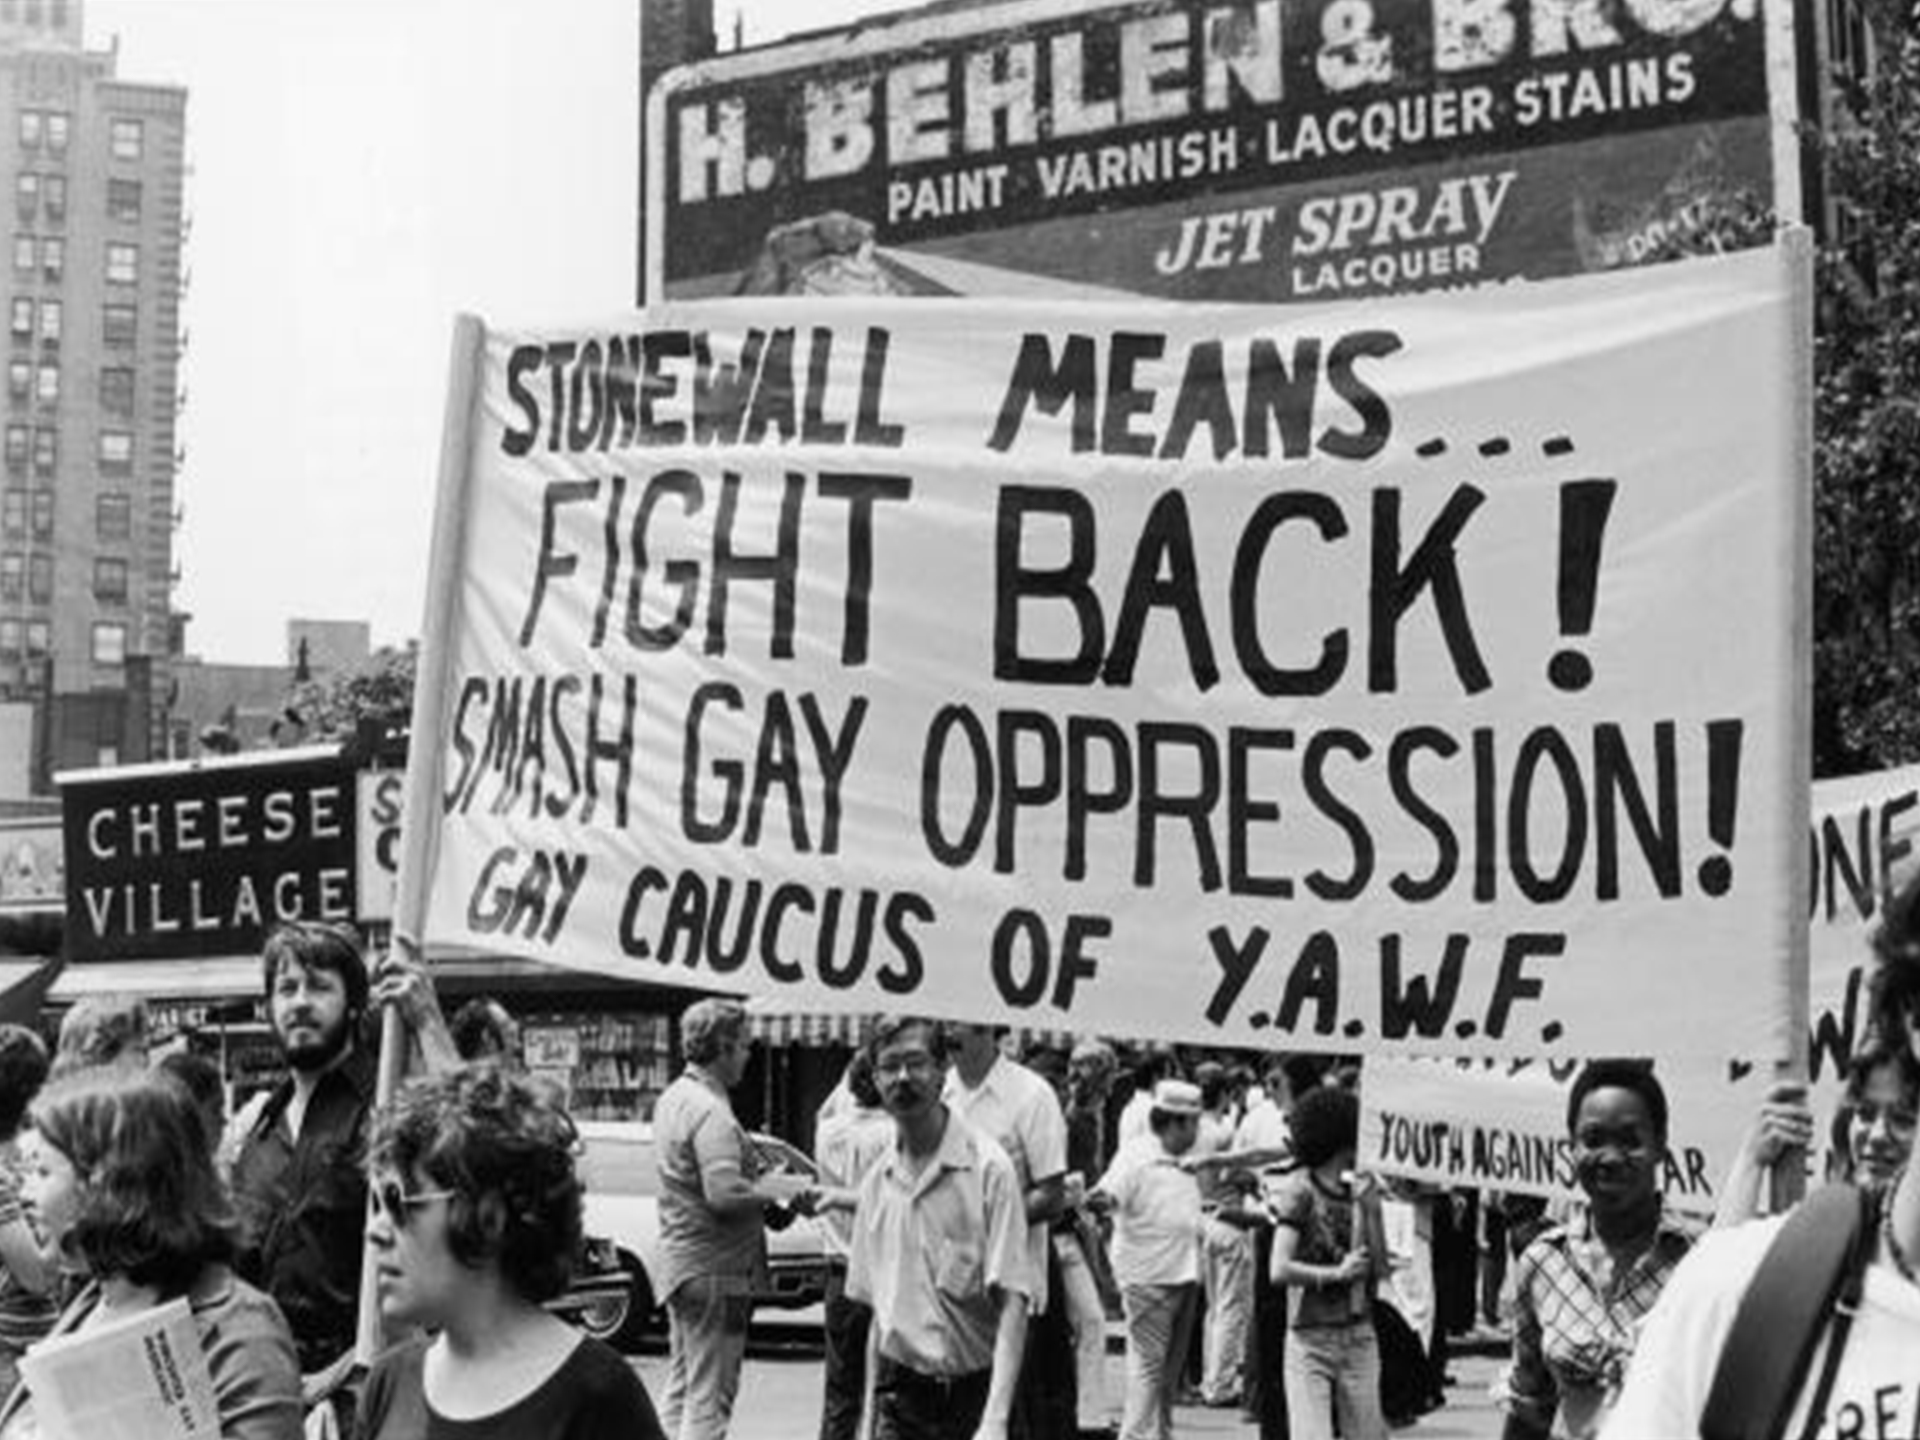 The 1969 Uprising That Kickstarted the LGBTQI Movement in America